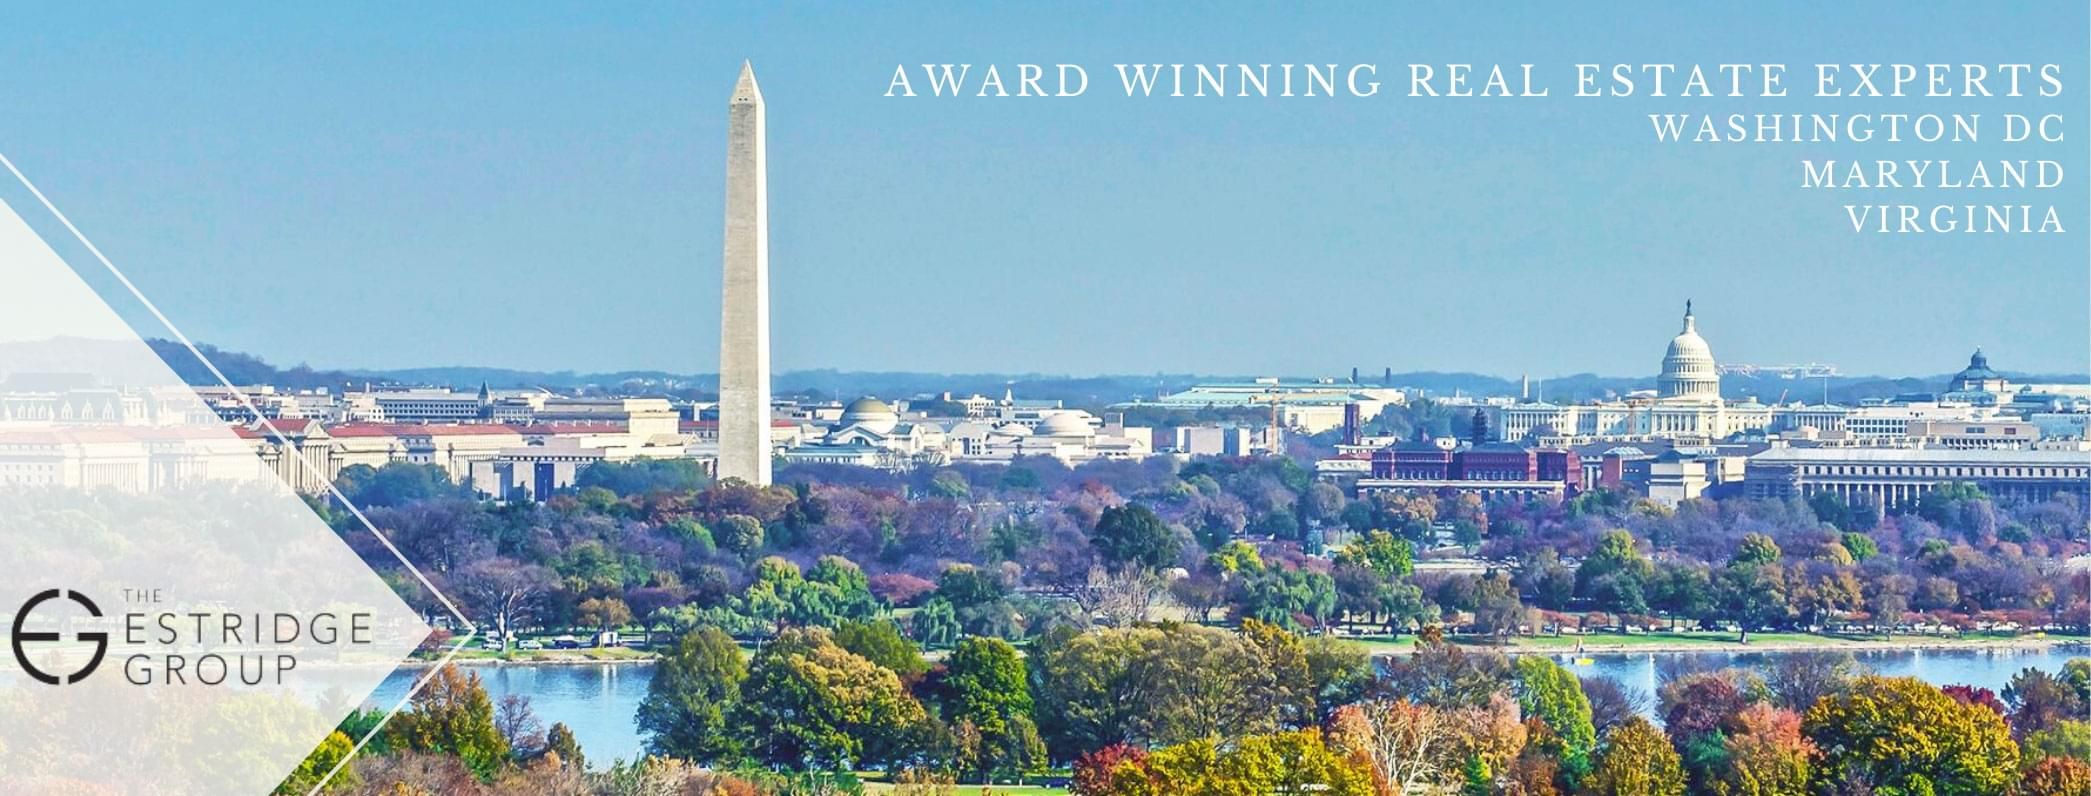 Award-winning real estate experts: Washington DC, Maryland, Virginia